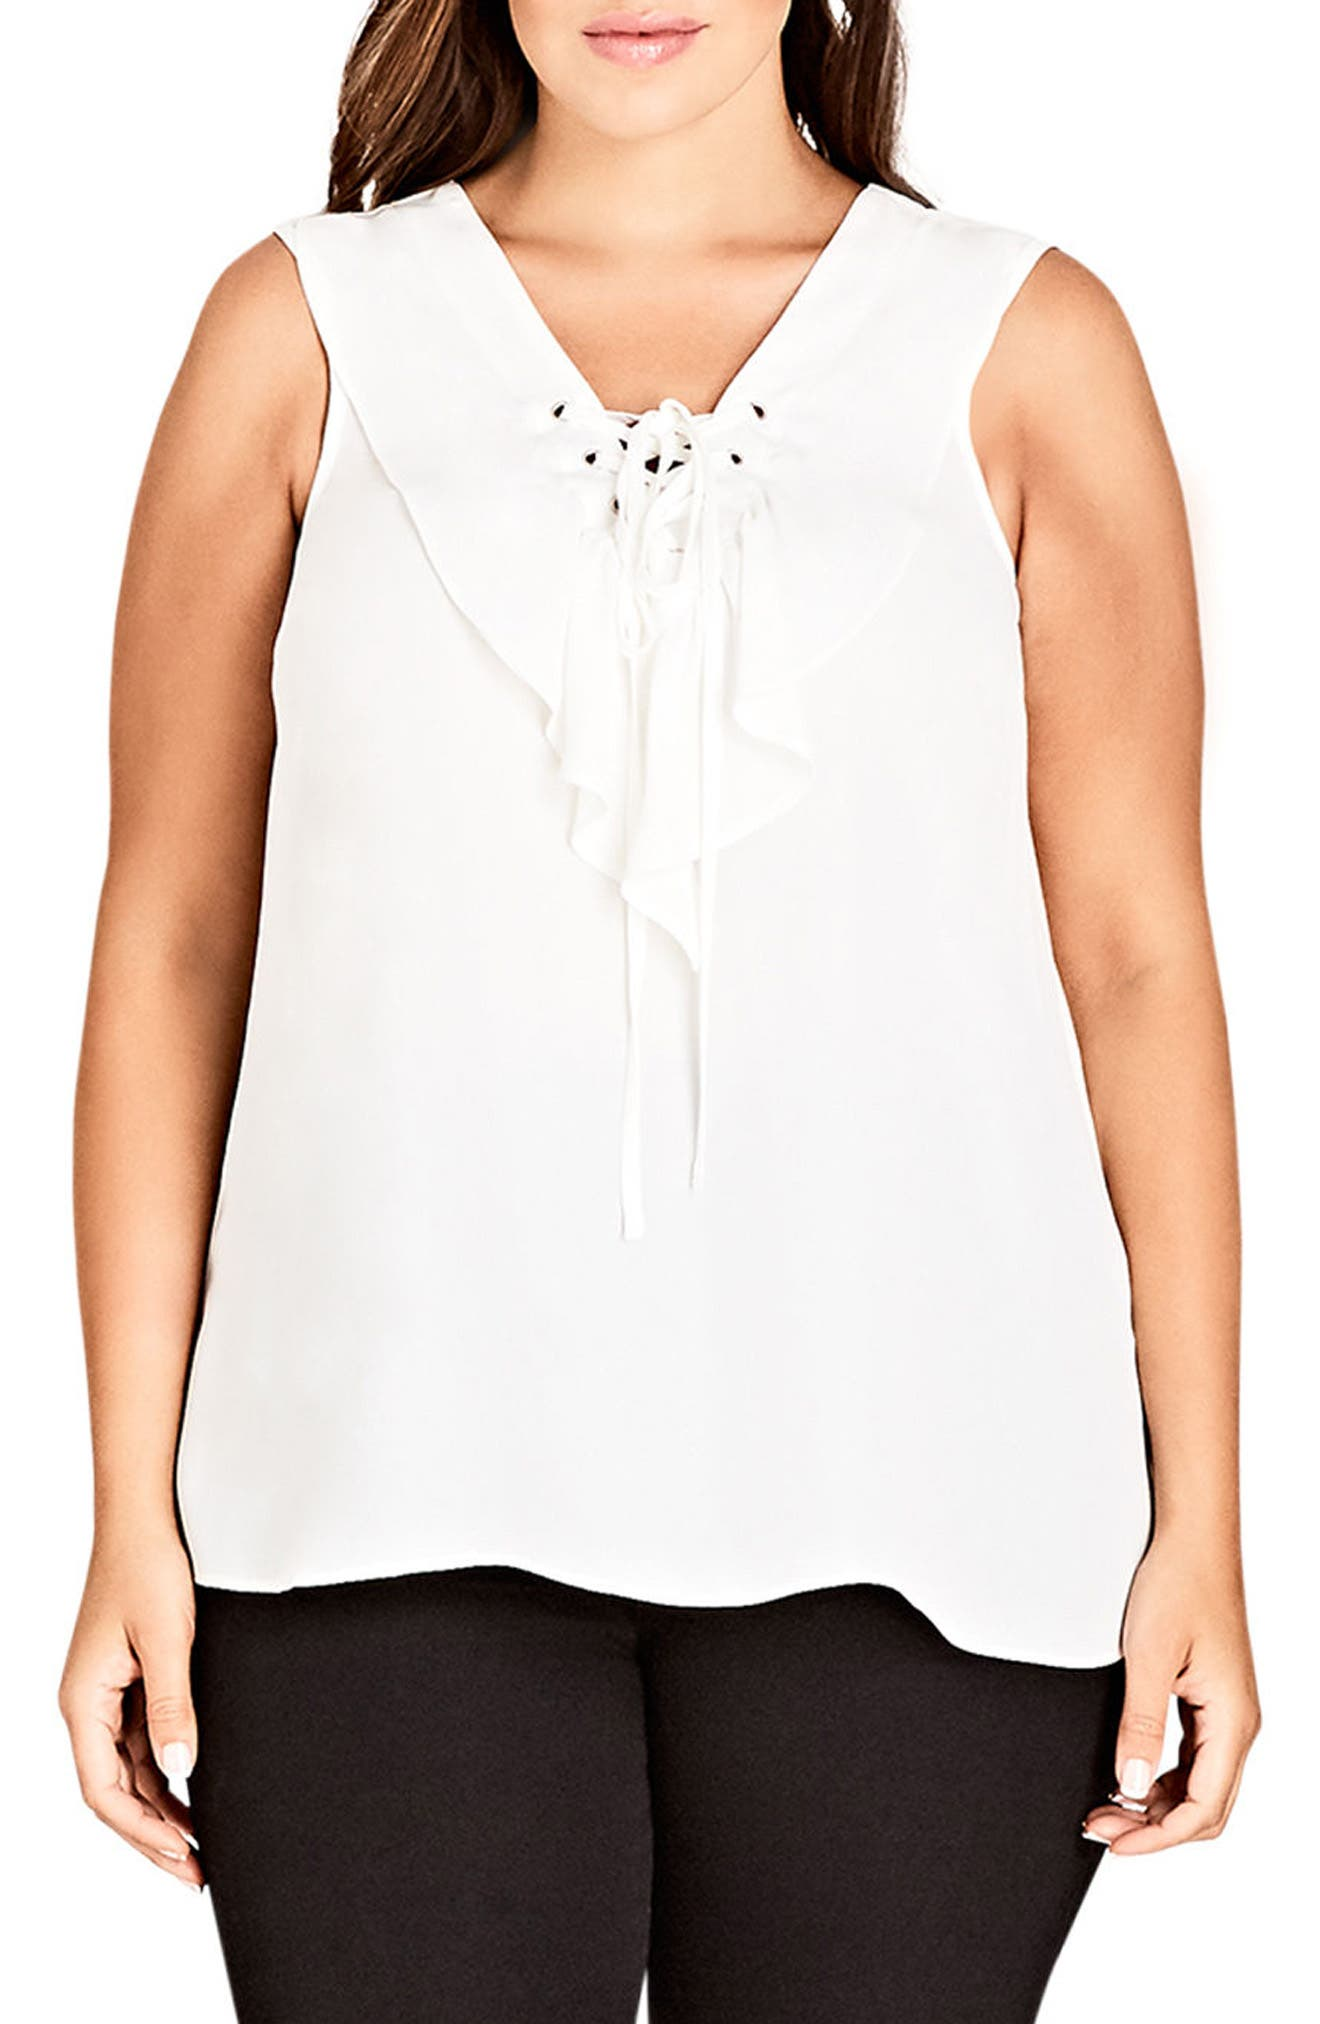 Alternate Image 1 Selected - Chic City Maya Top (Plus Size)